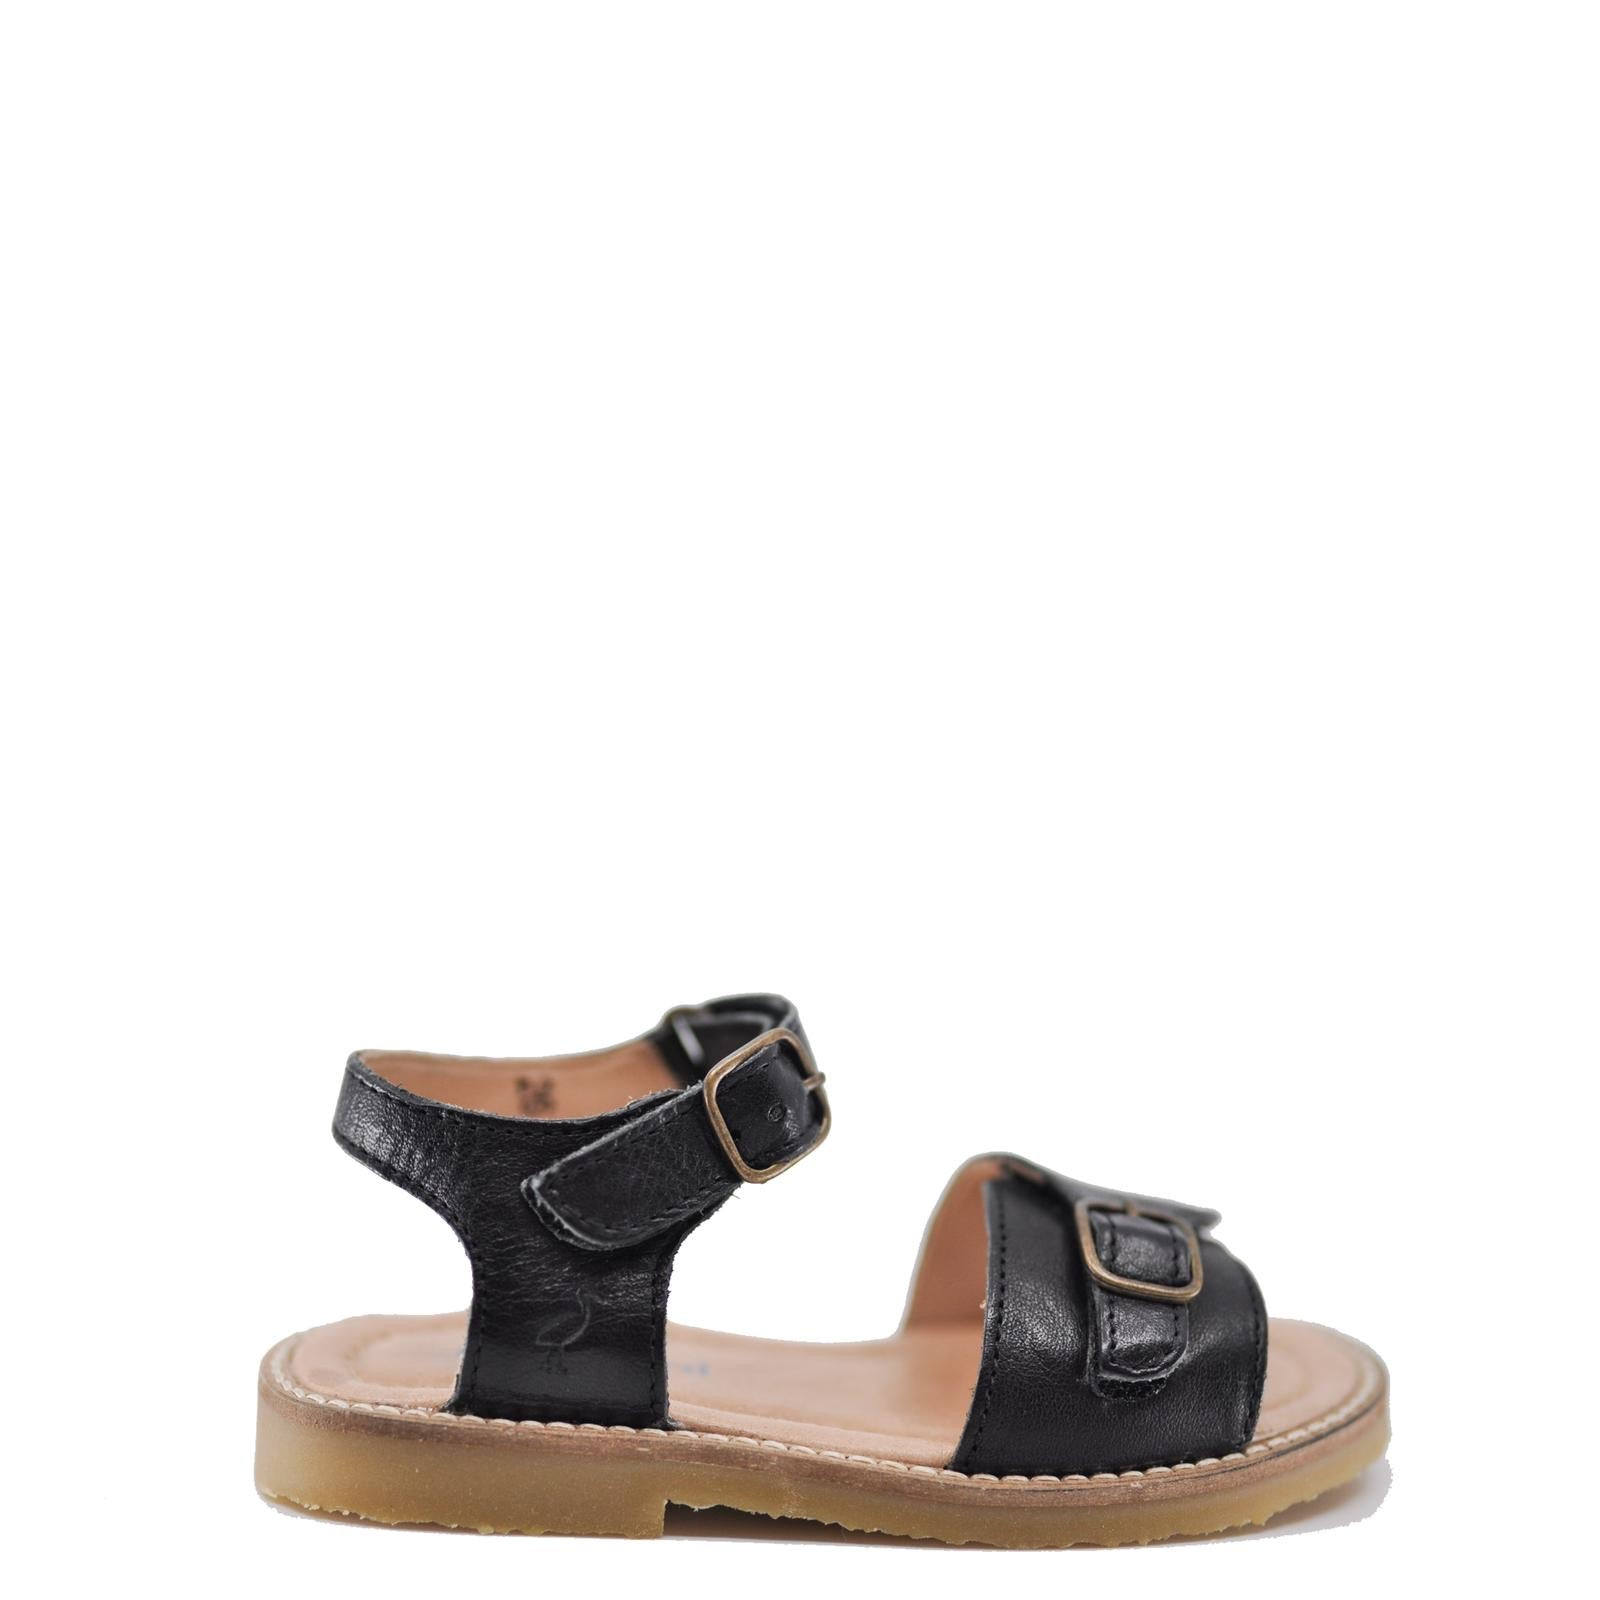 Petit Nord Black Velcro Sandal-Tassel Children Shoes